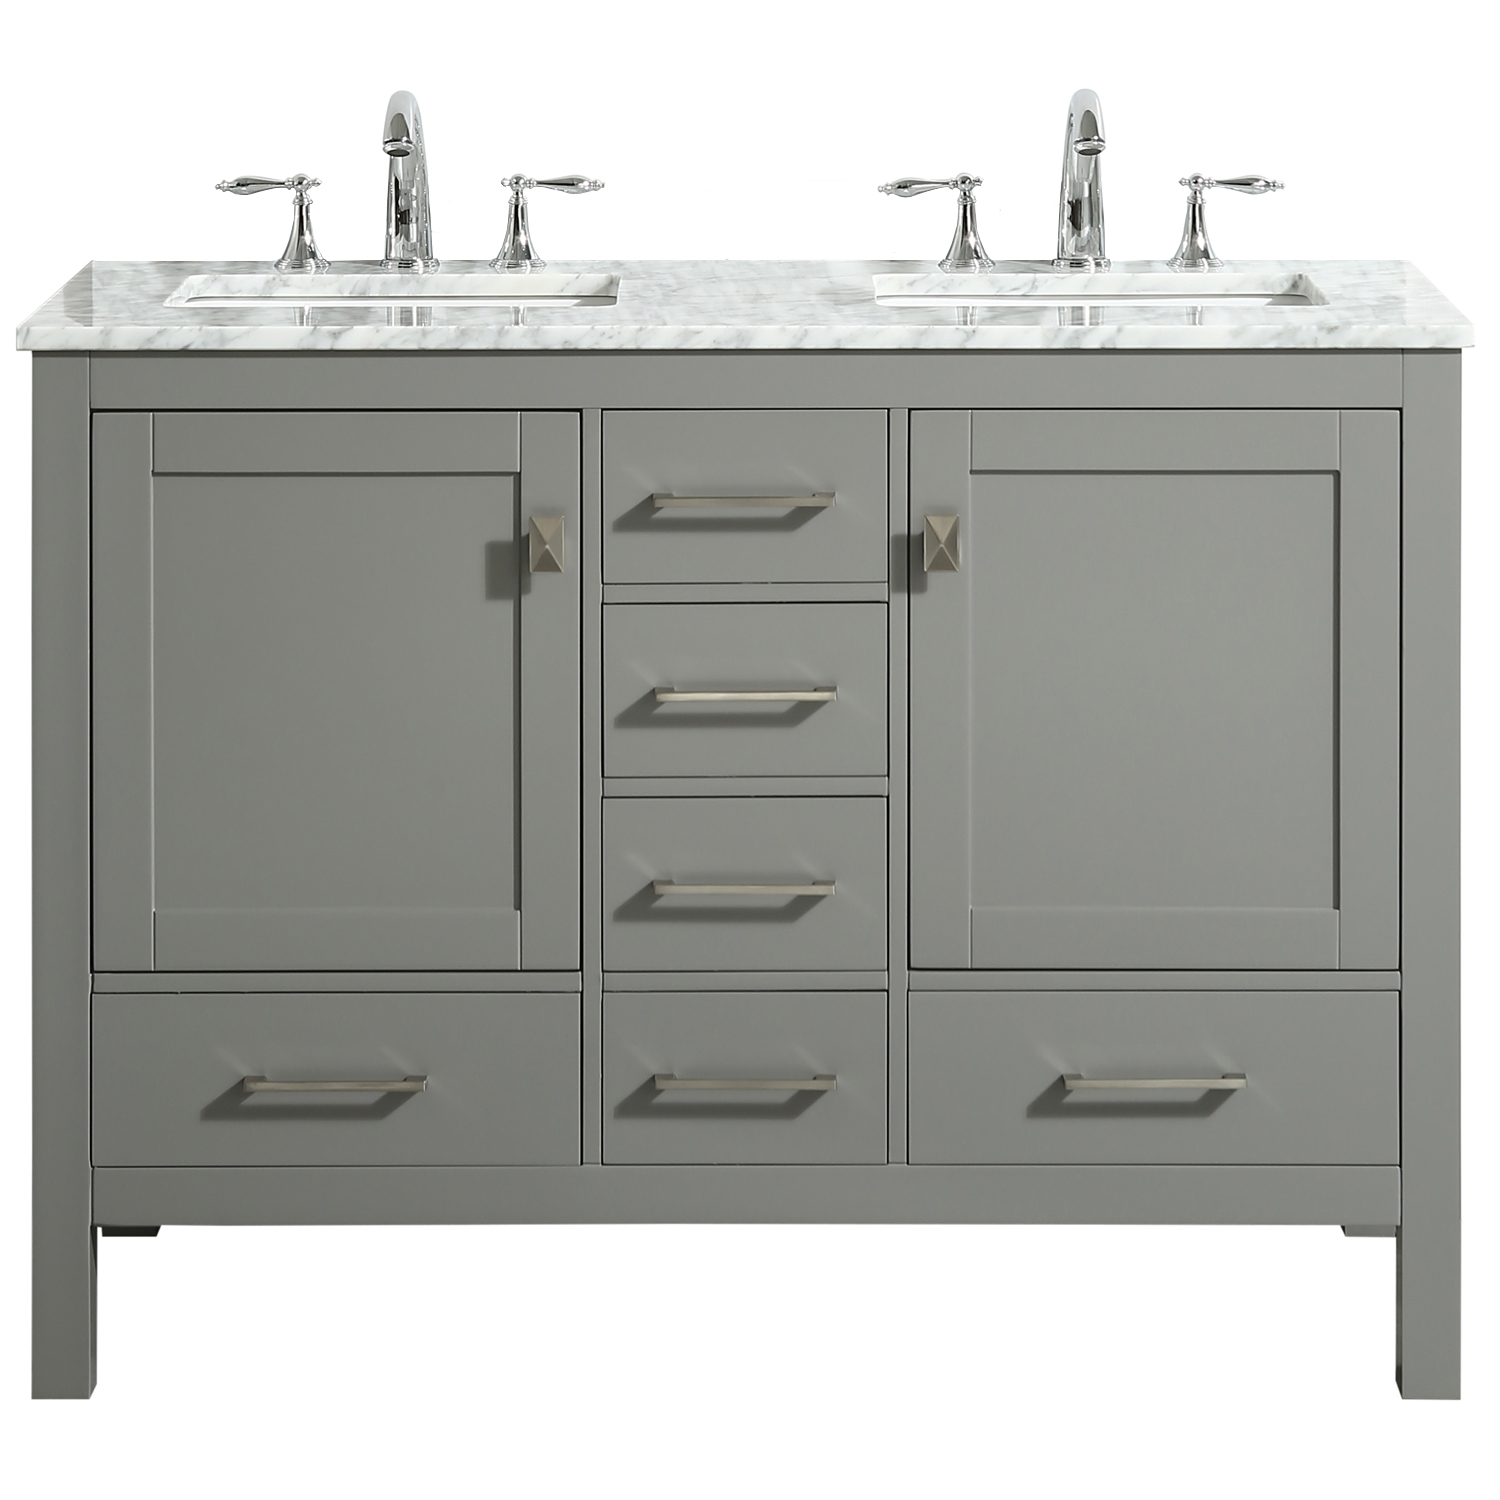 "EVVN412 48GR DS A Main - Eviva Aberdeen 48"" Transitional Gray Bathroom Vanity with White Carrara Countertop and double Sinks"